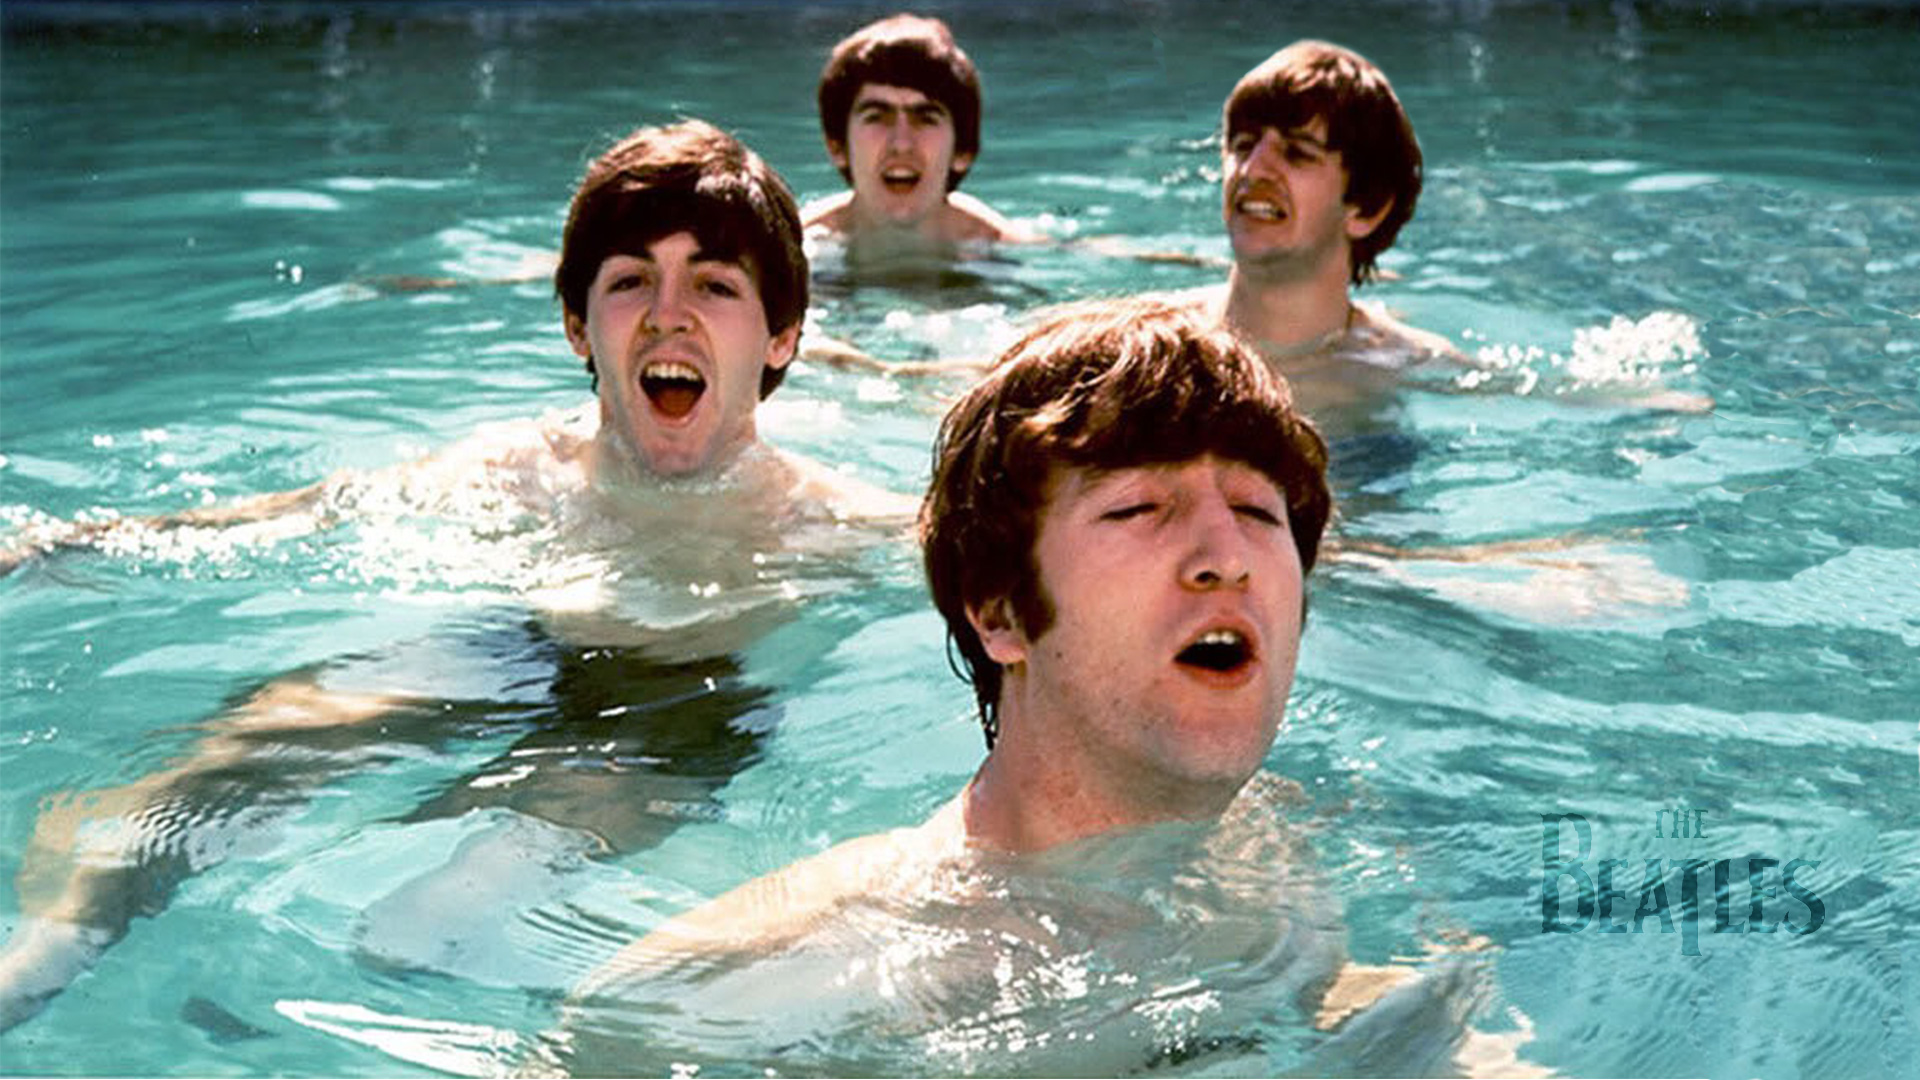 The Beatles Wallpaper Pool